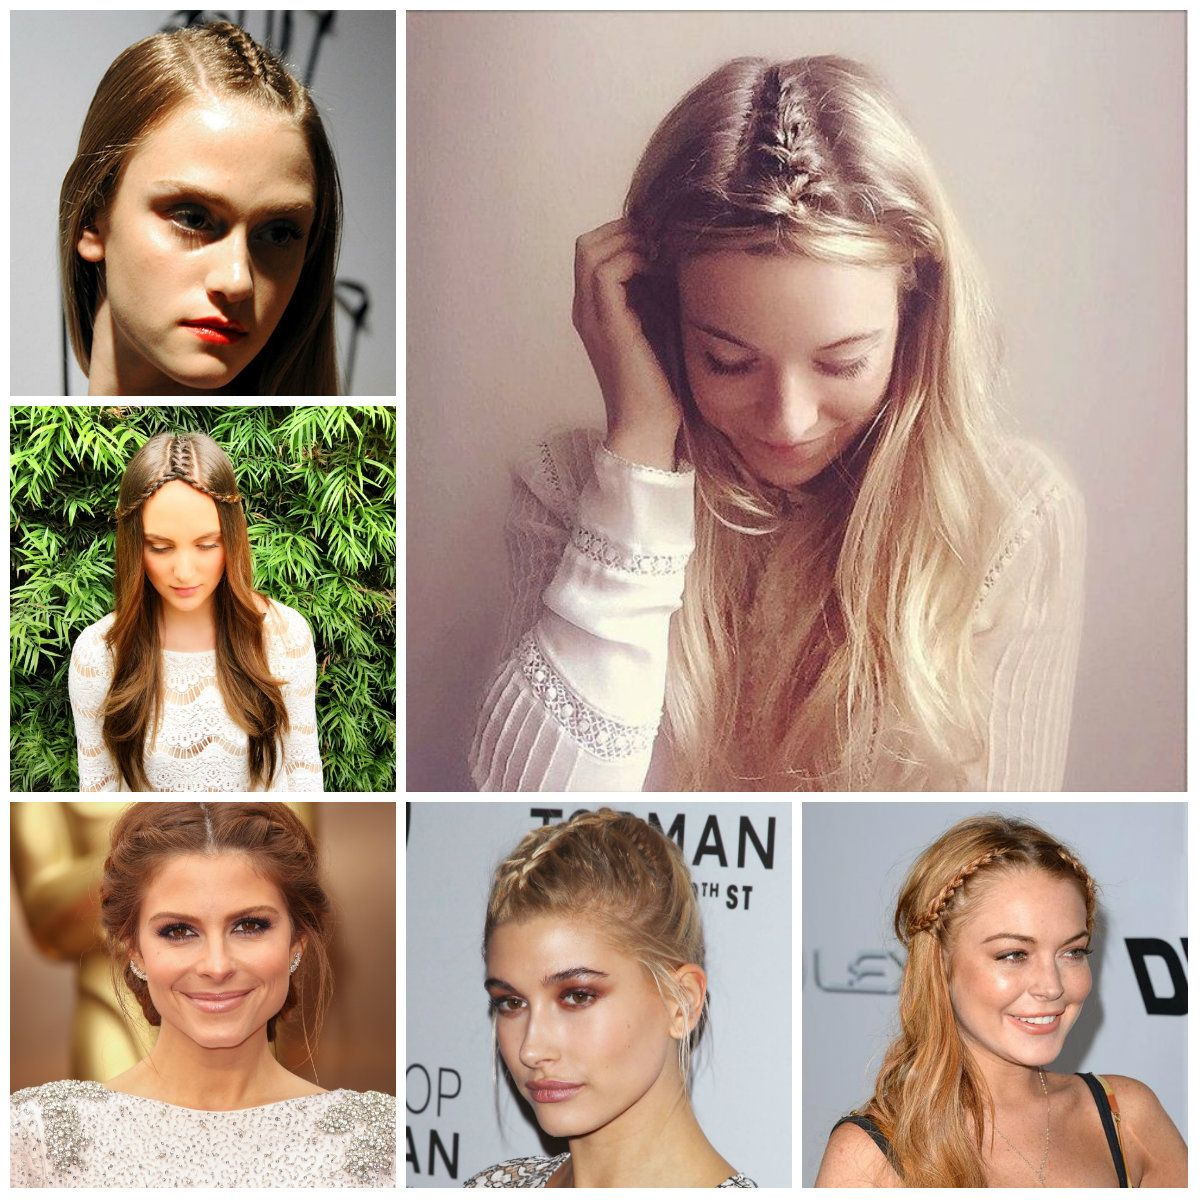 Top 6 Center-Part Braids for 2016 | Trendy Hairstyles 2015 / 2016 ...